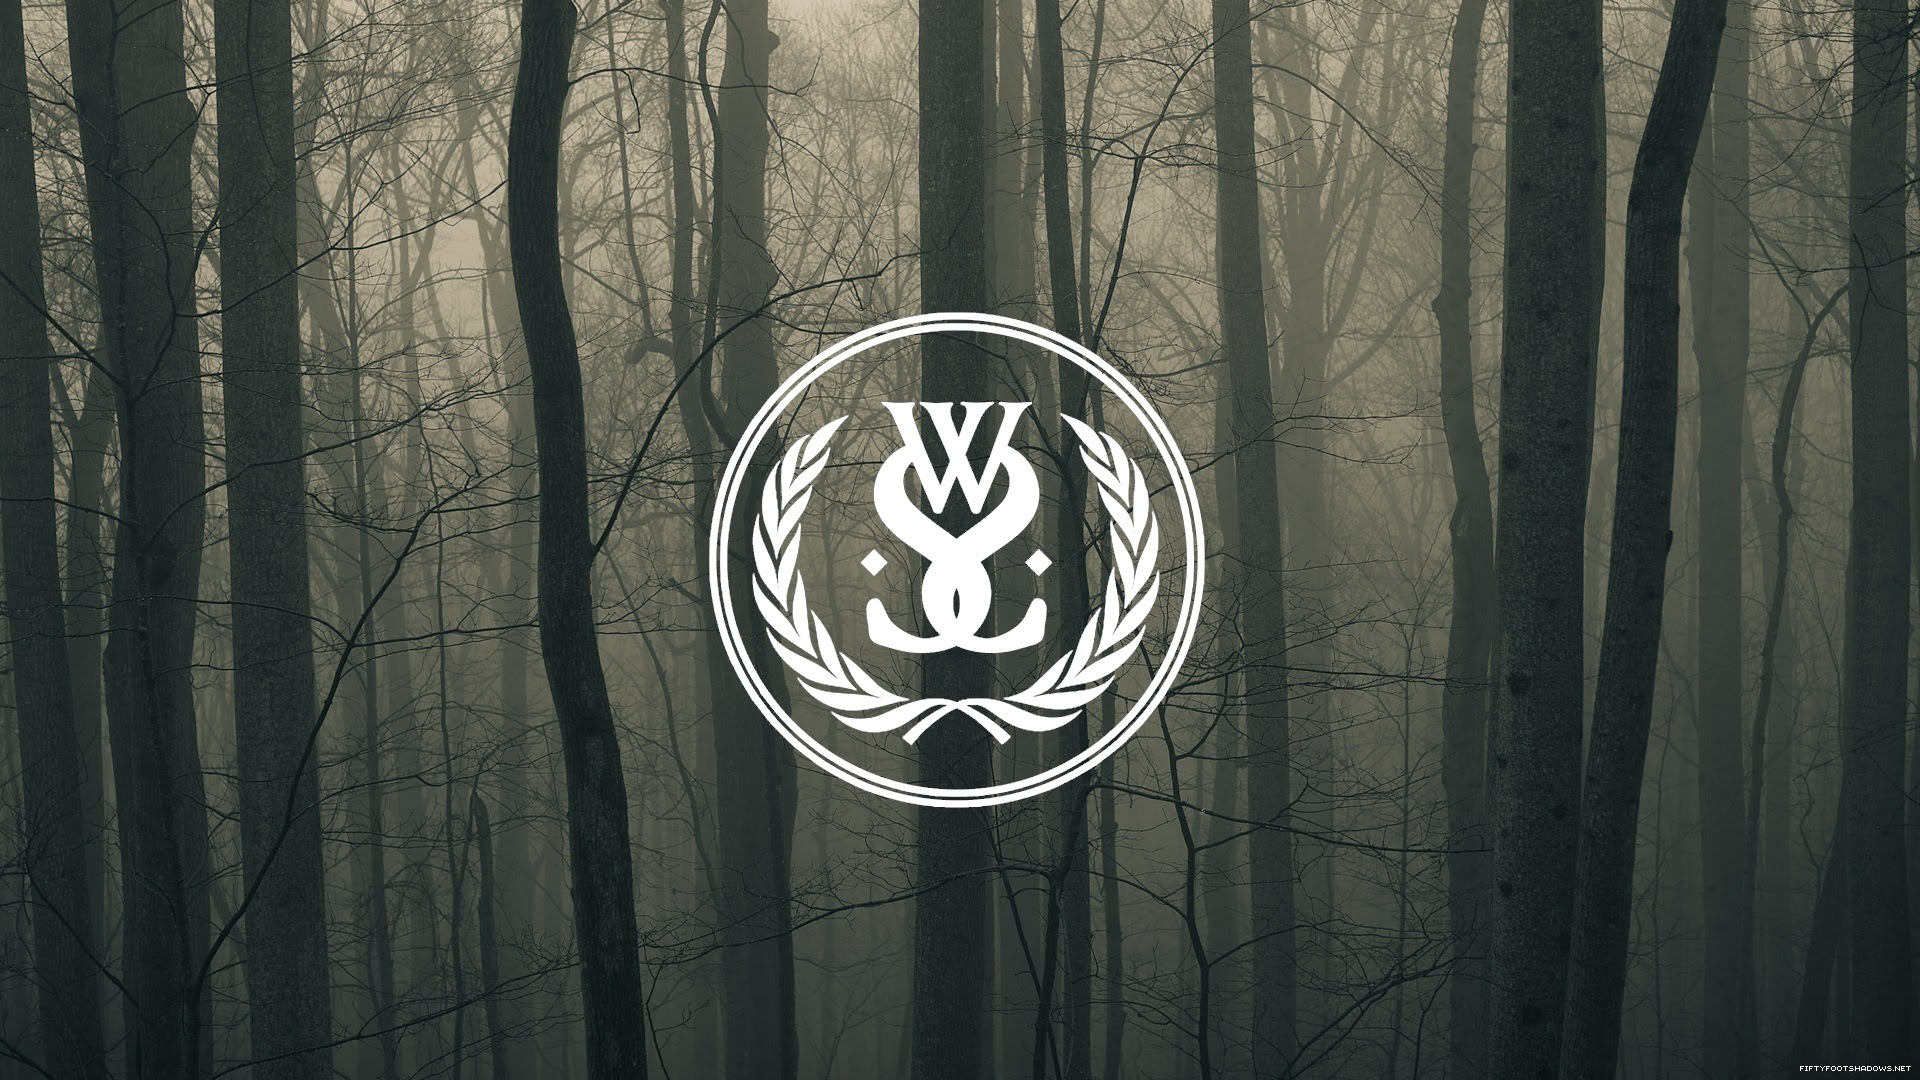 Hey R Metalcore Let S Make Some Beautiful Wallpapers Together